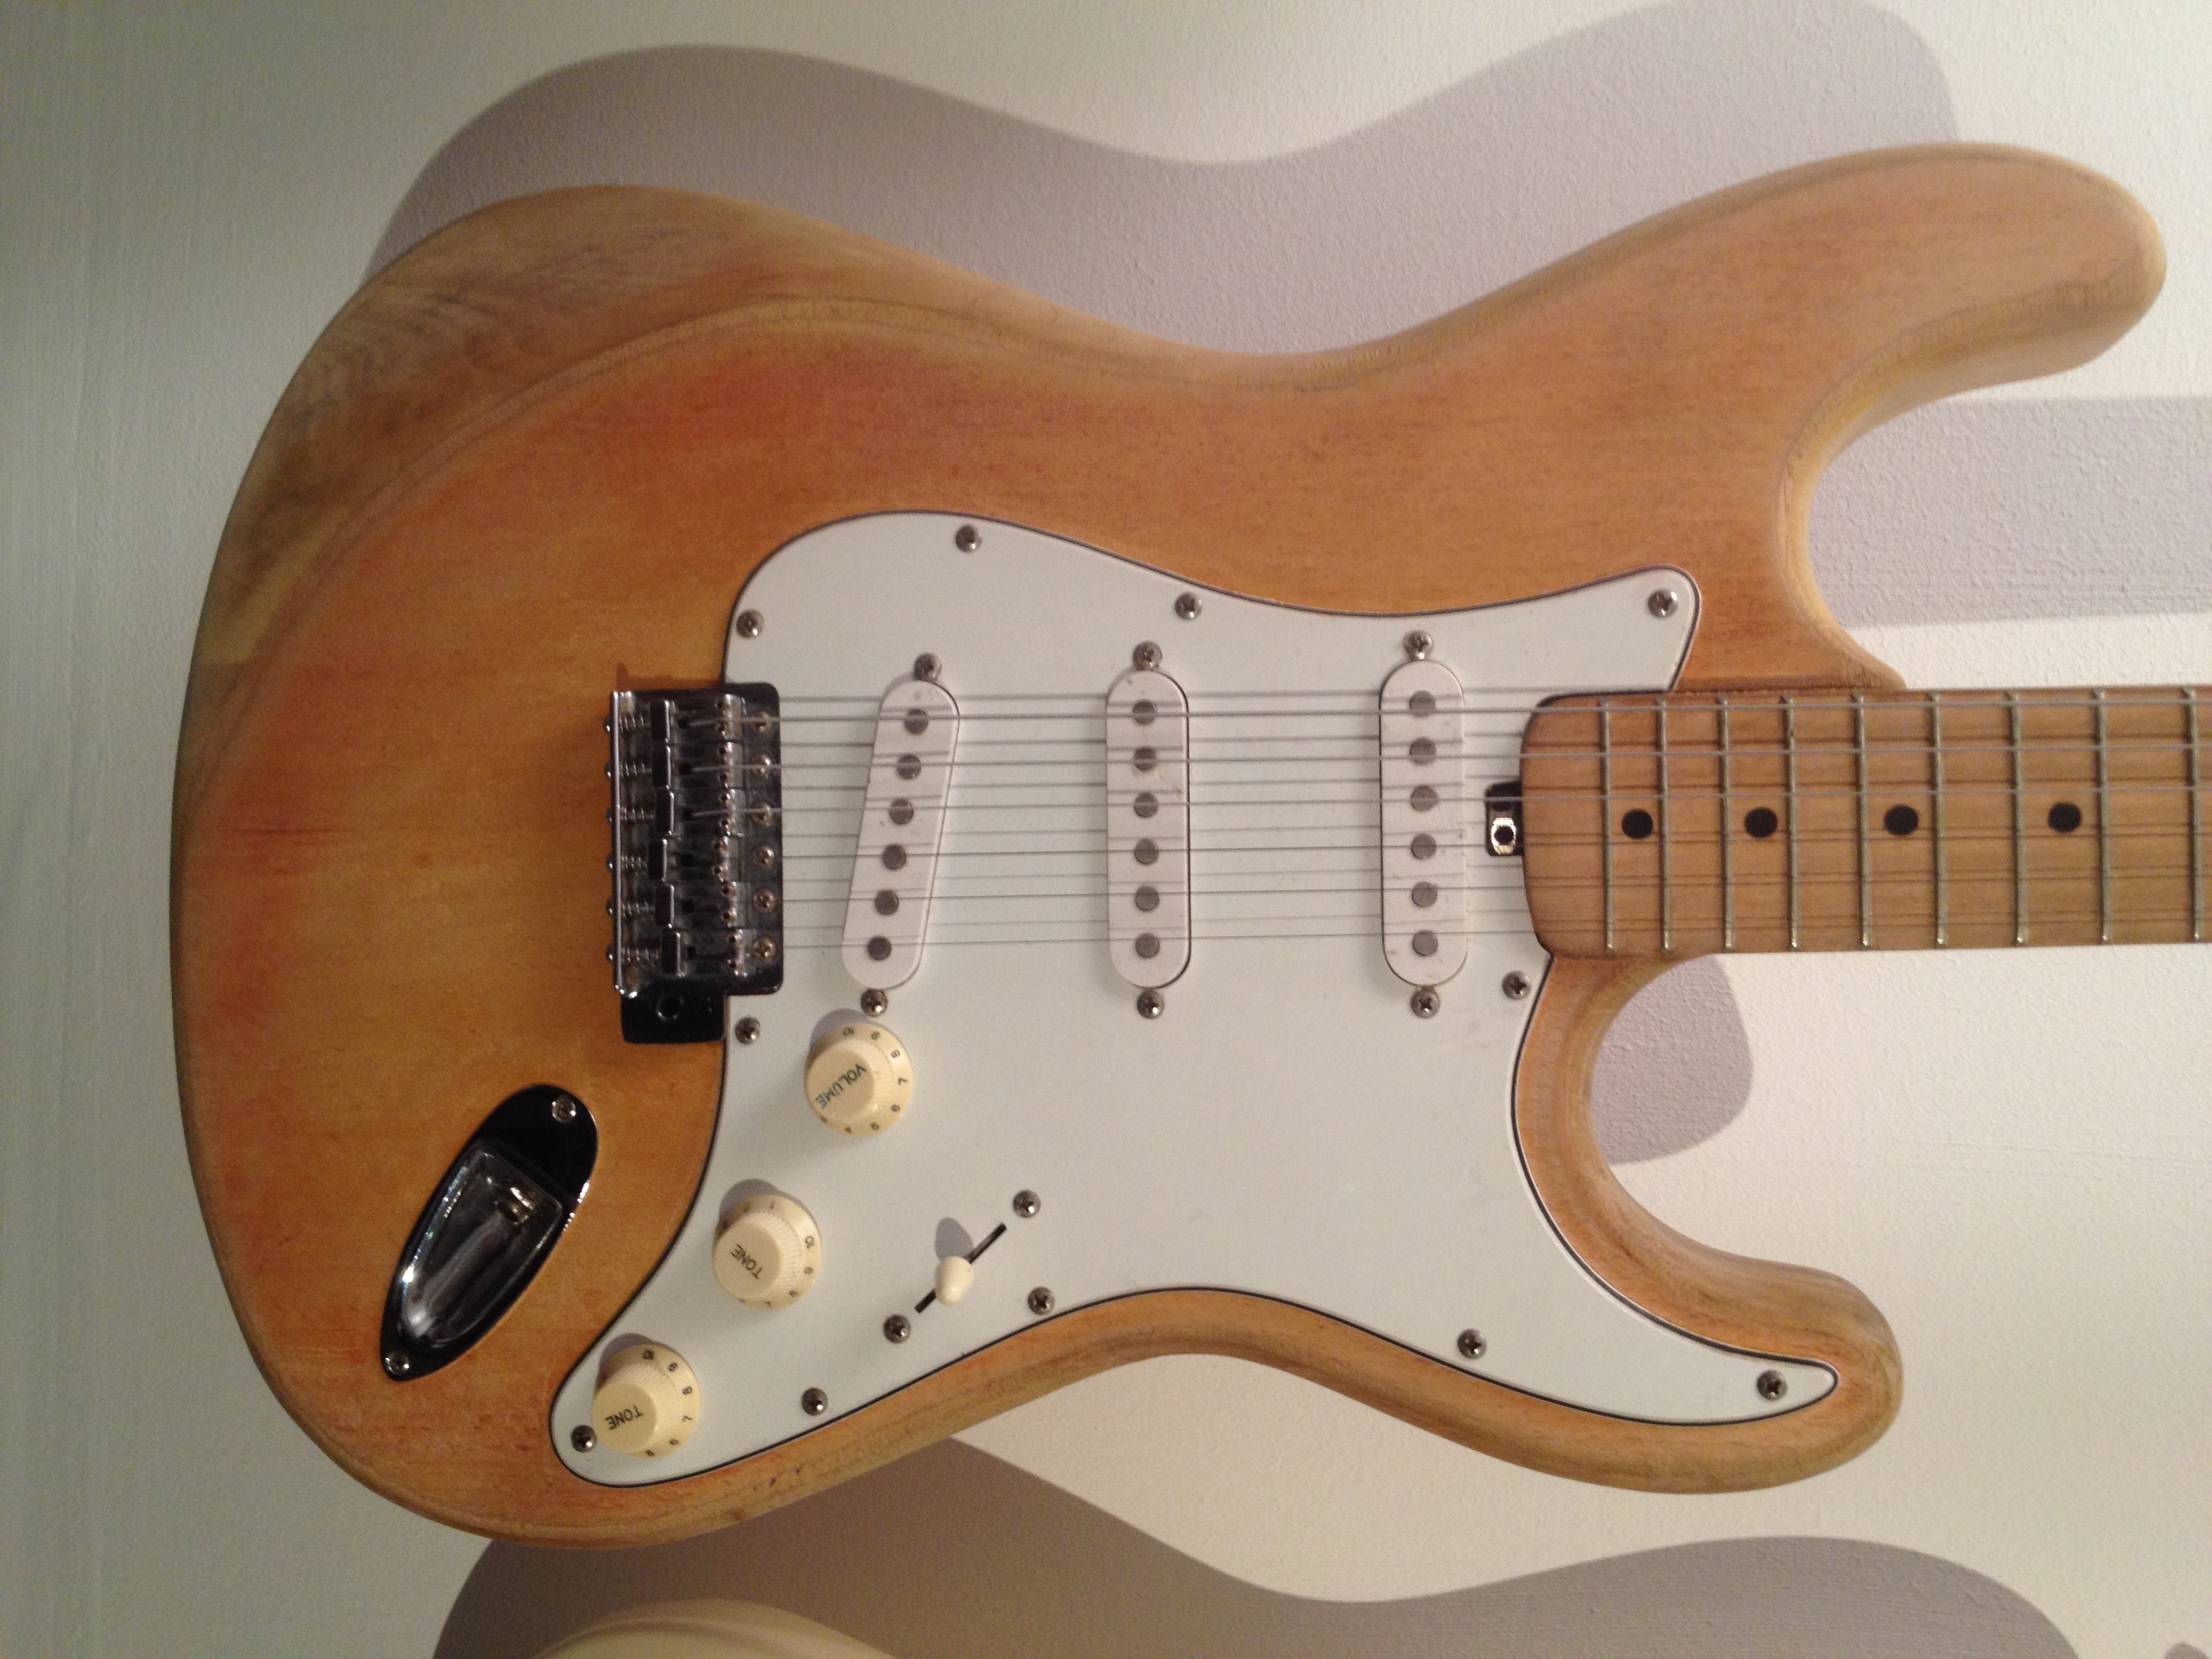 Dm50 Strat Wiring Another Blog About Diagram 3 Way Guitar Switch Import Identification Help Please Pic Included Fender